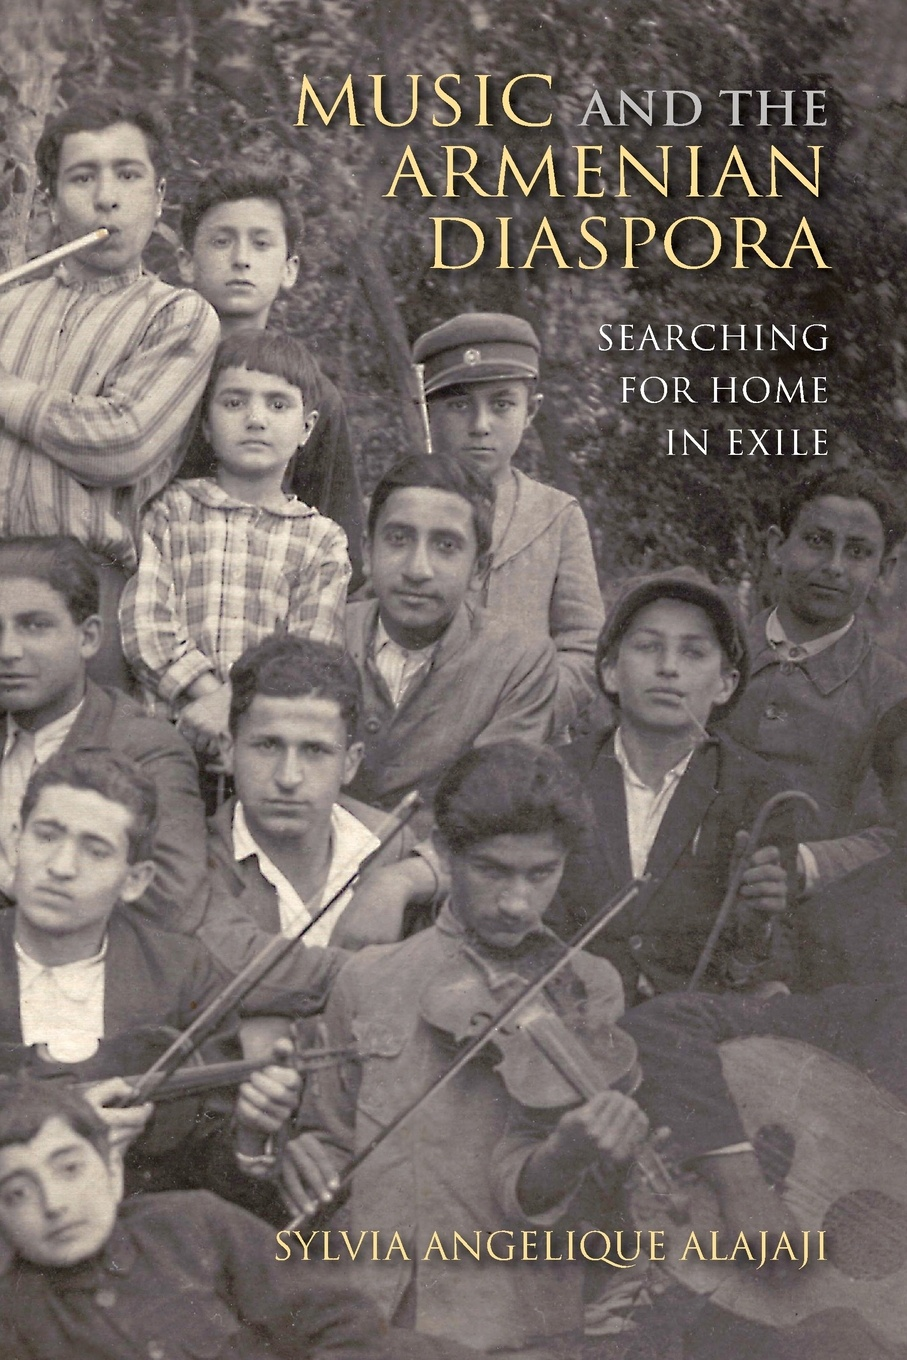 Sylvia Angelique Alajaji Music and the Armenian Diaspora. Searching for Home in Exile godwin sadoh five decades of music transmutation in nigeria and the diaspora